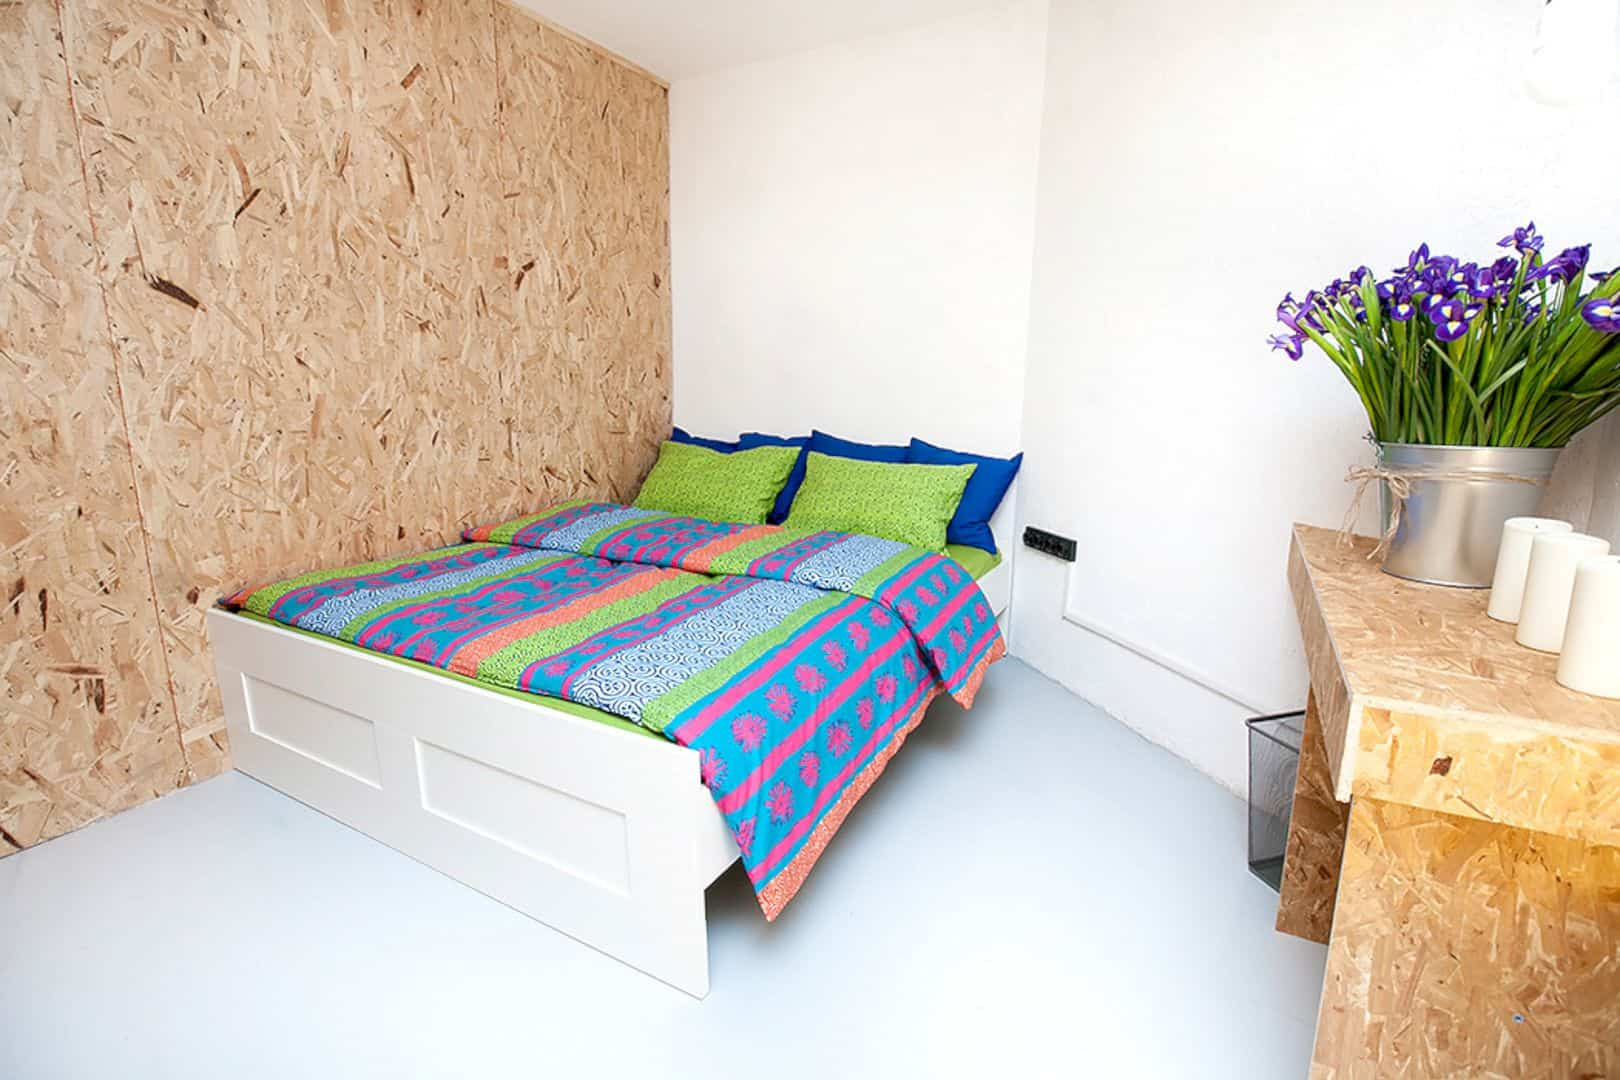 Simple Hostel A Colorful Hostel With Simple Interior And